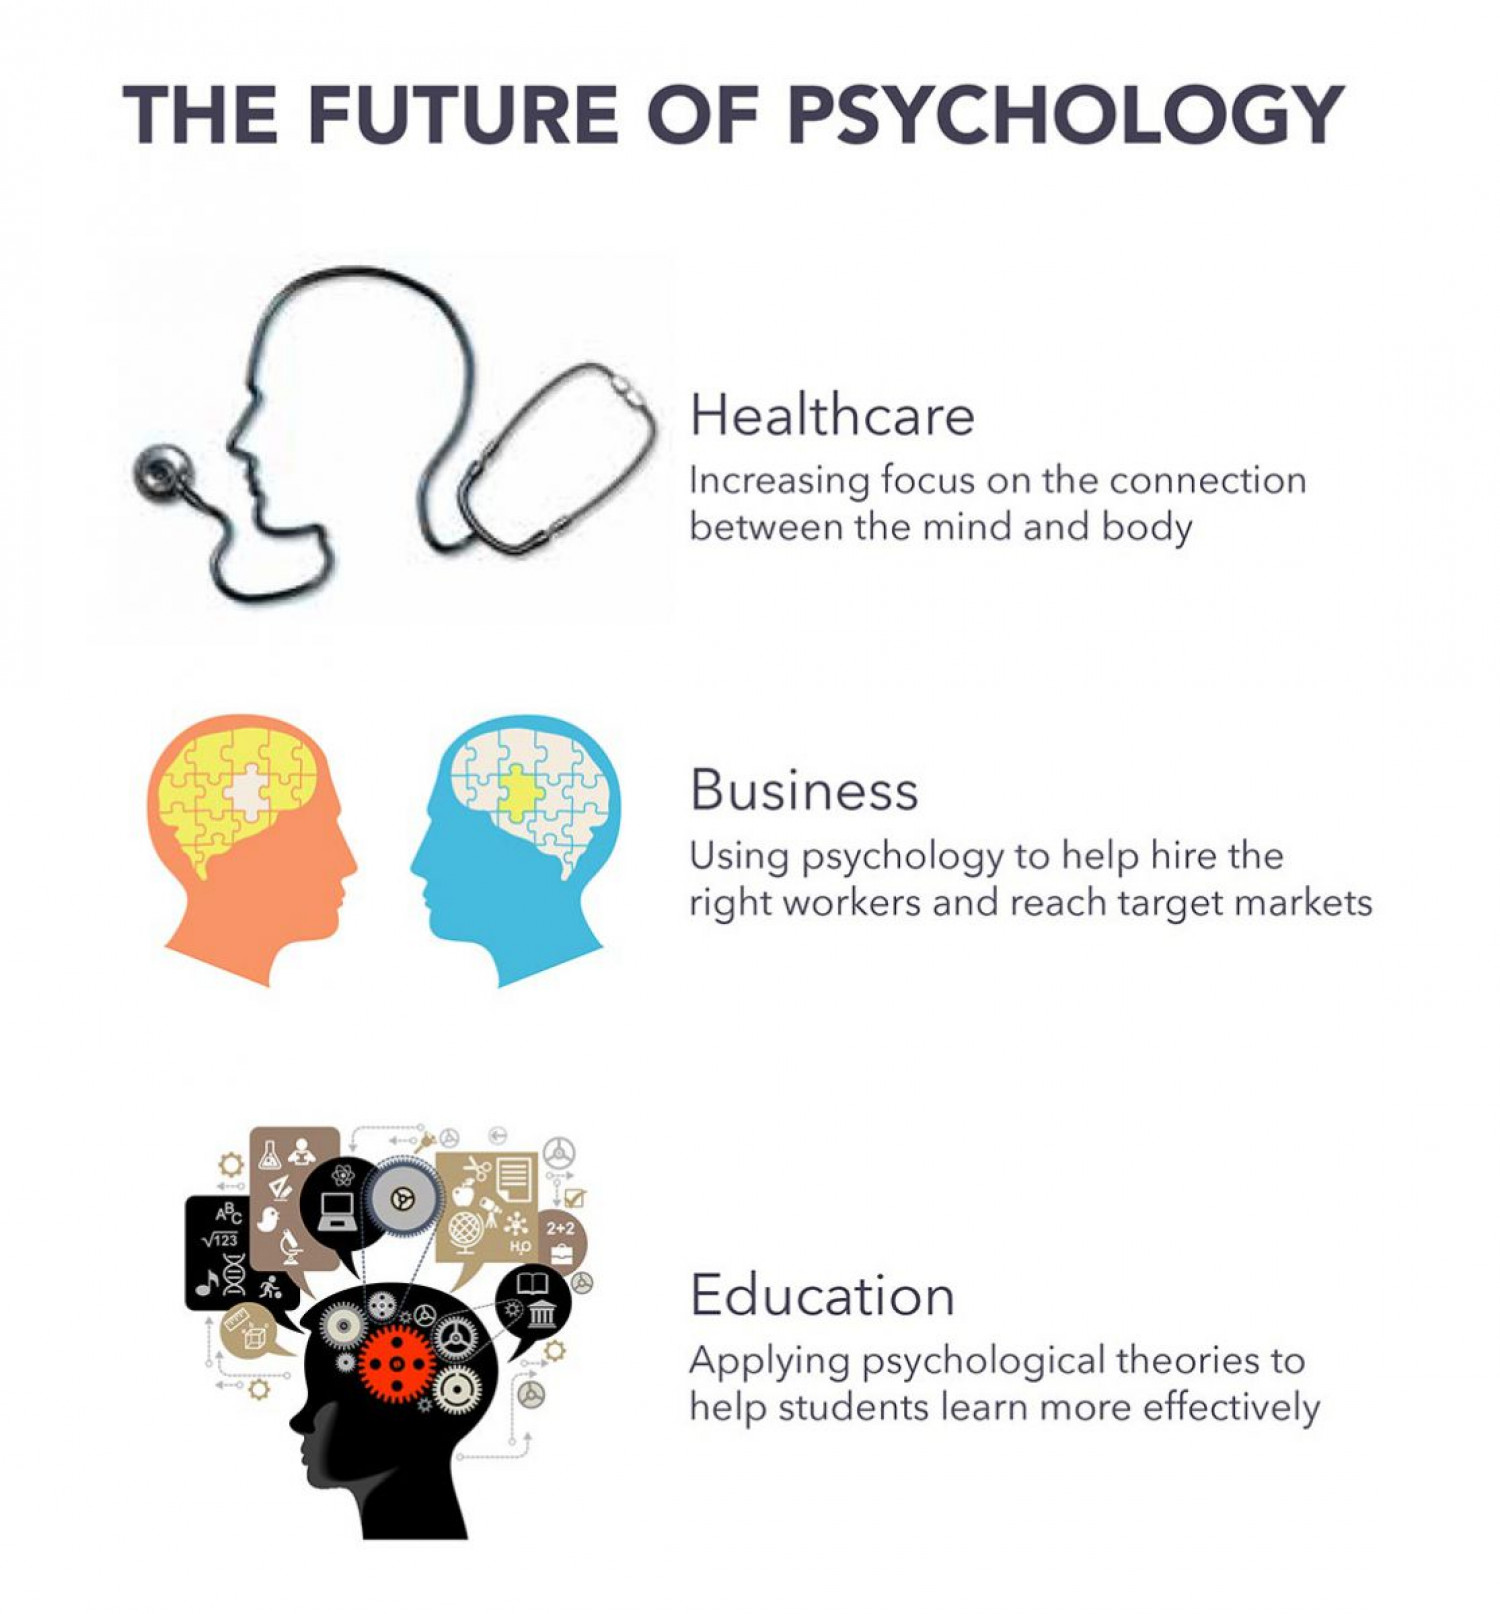 The Future of Psychology Infographic